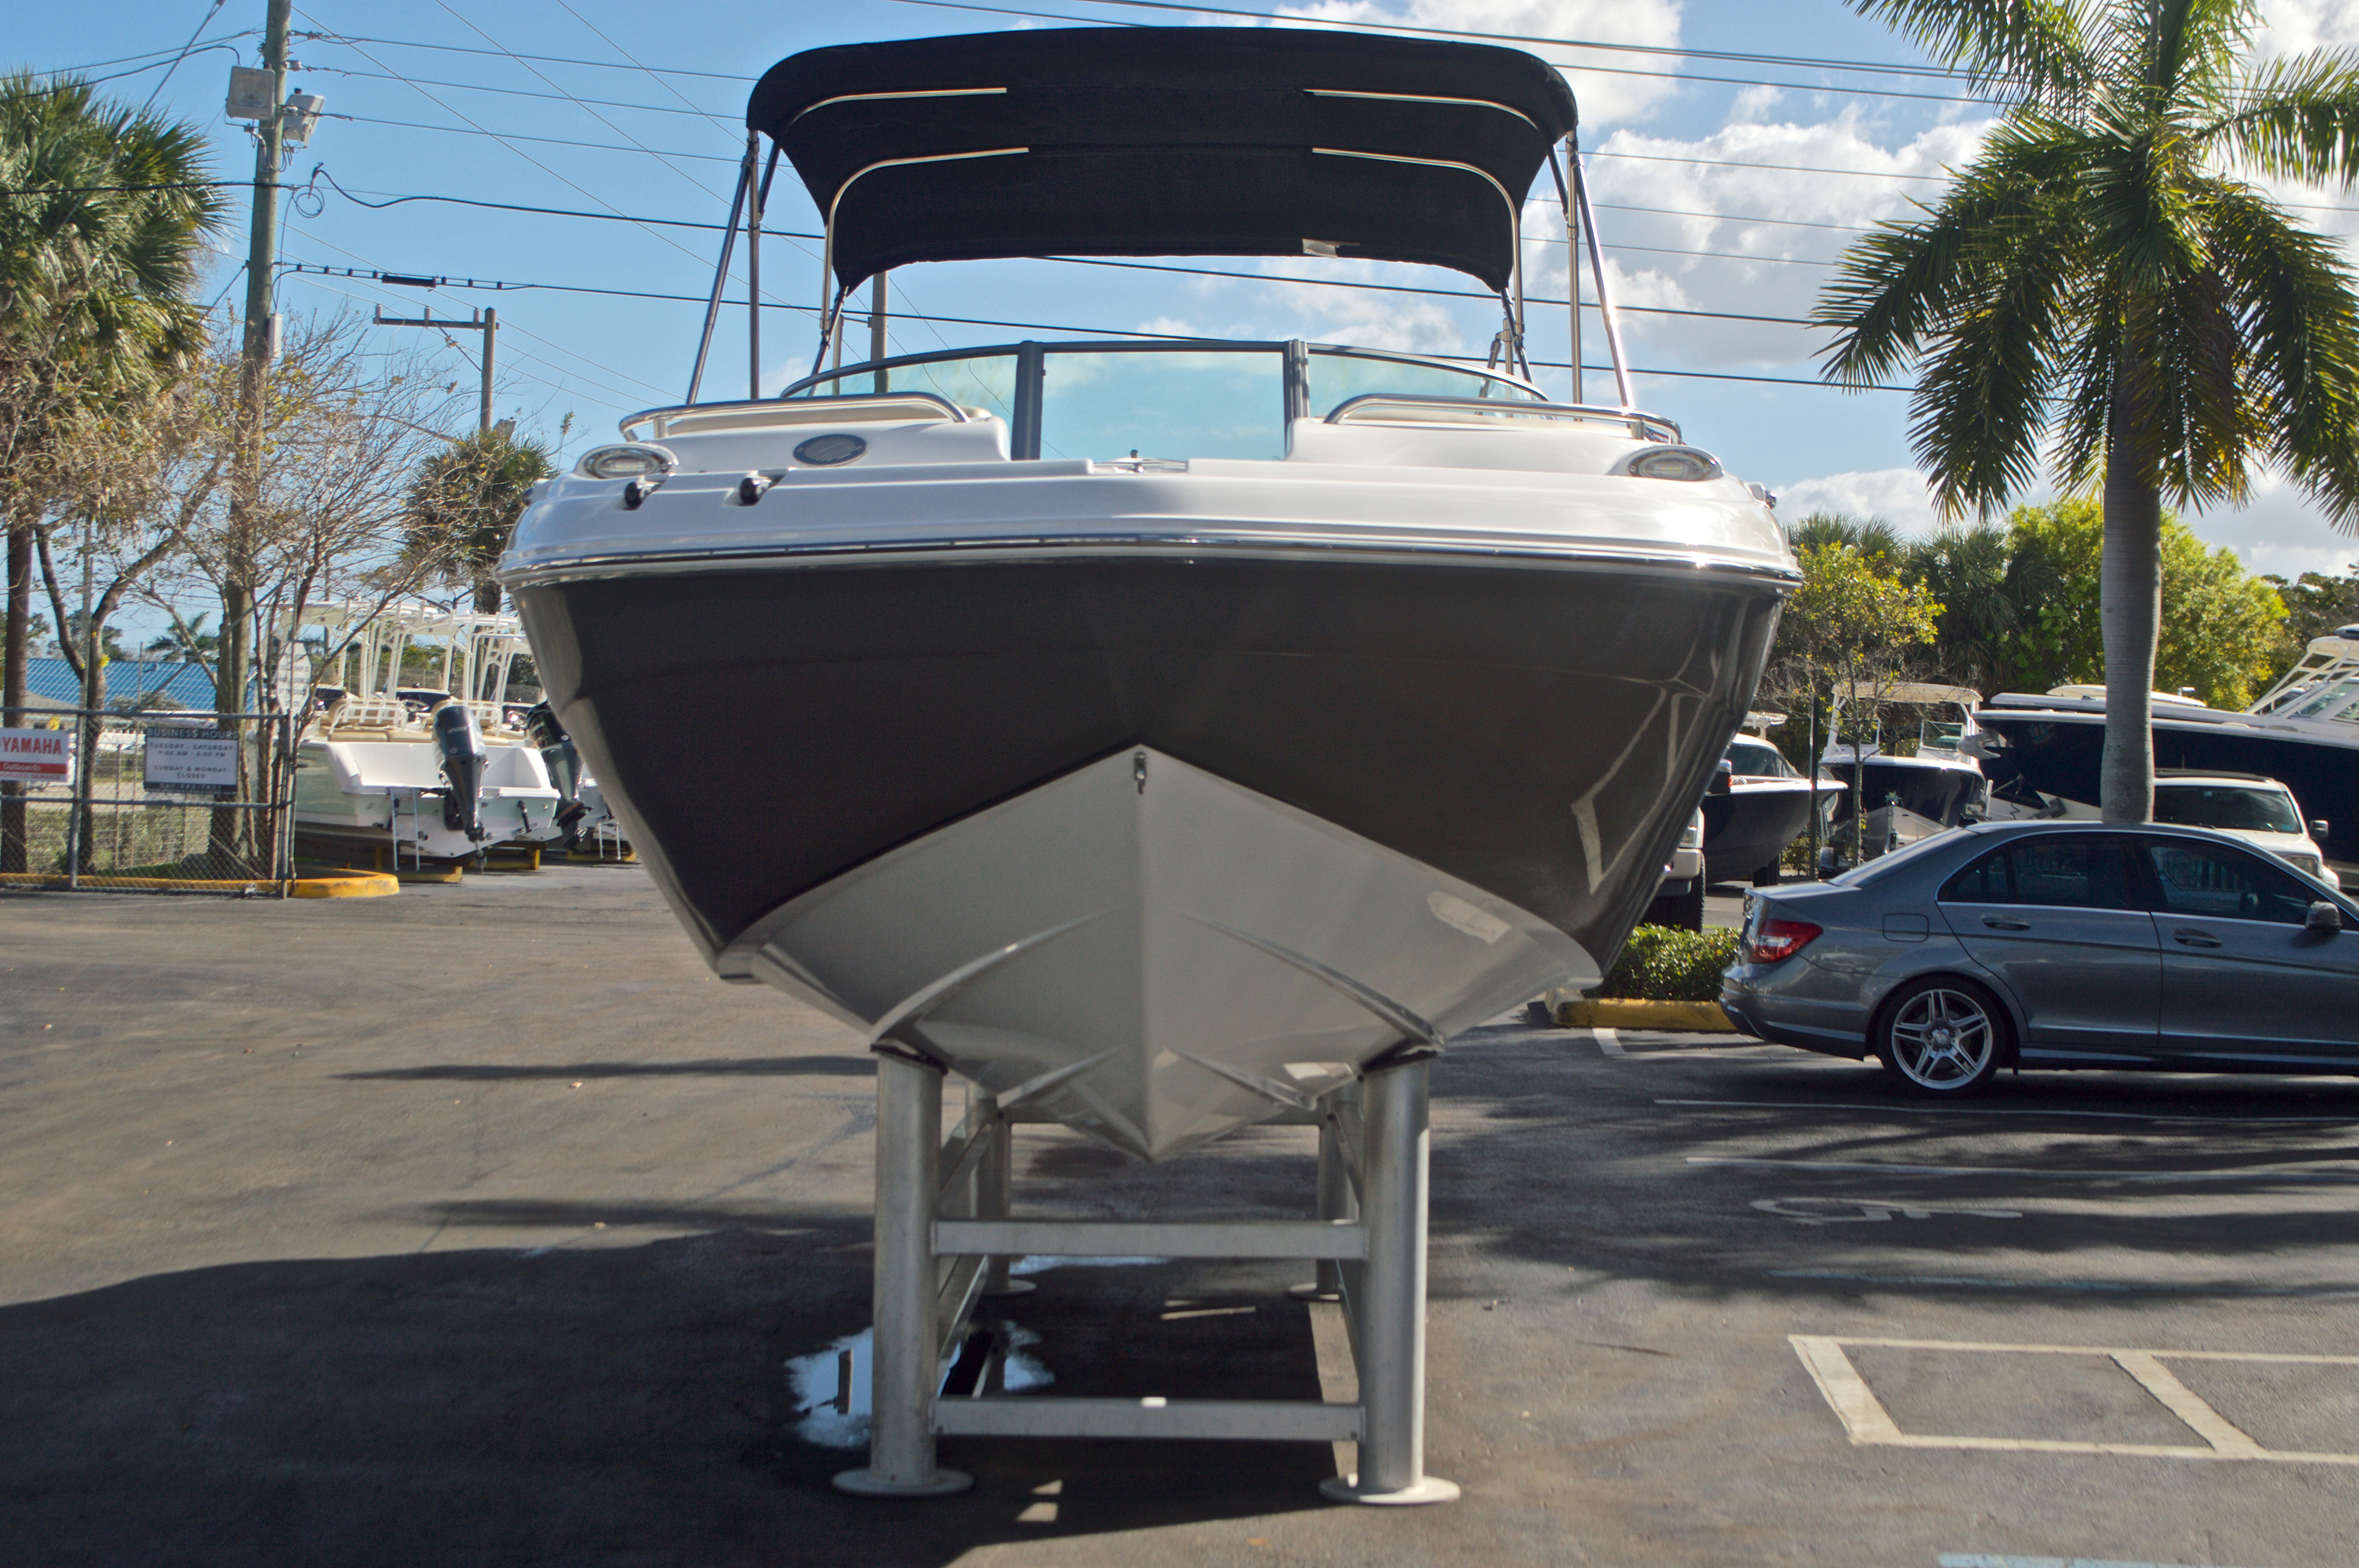 Thumbnail 2 for New 2017 Hurricane SunDeck SD 2200 OB boat for sale in West Palm Beach, FL